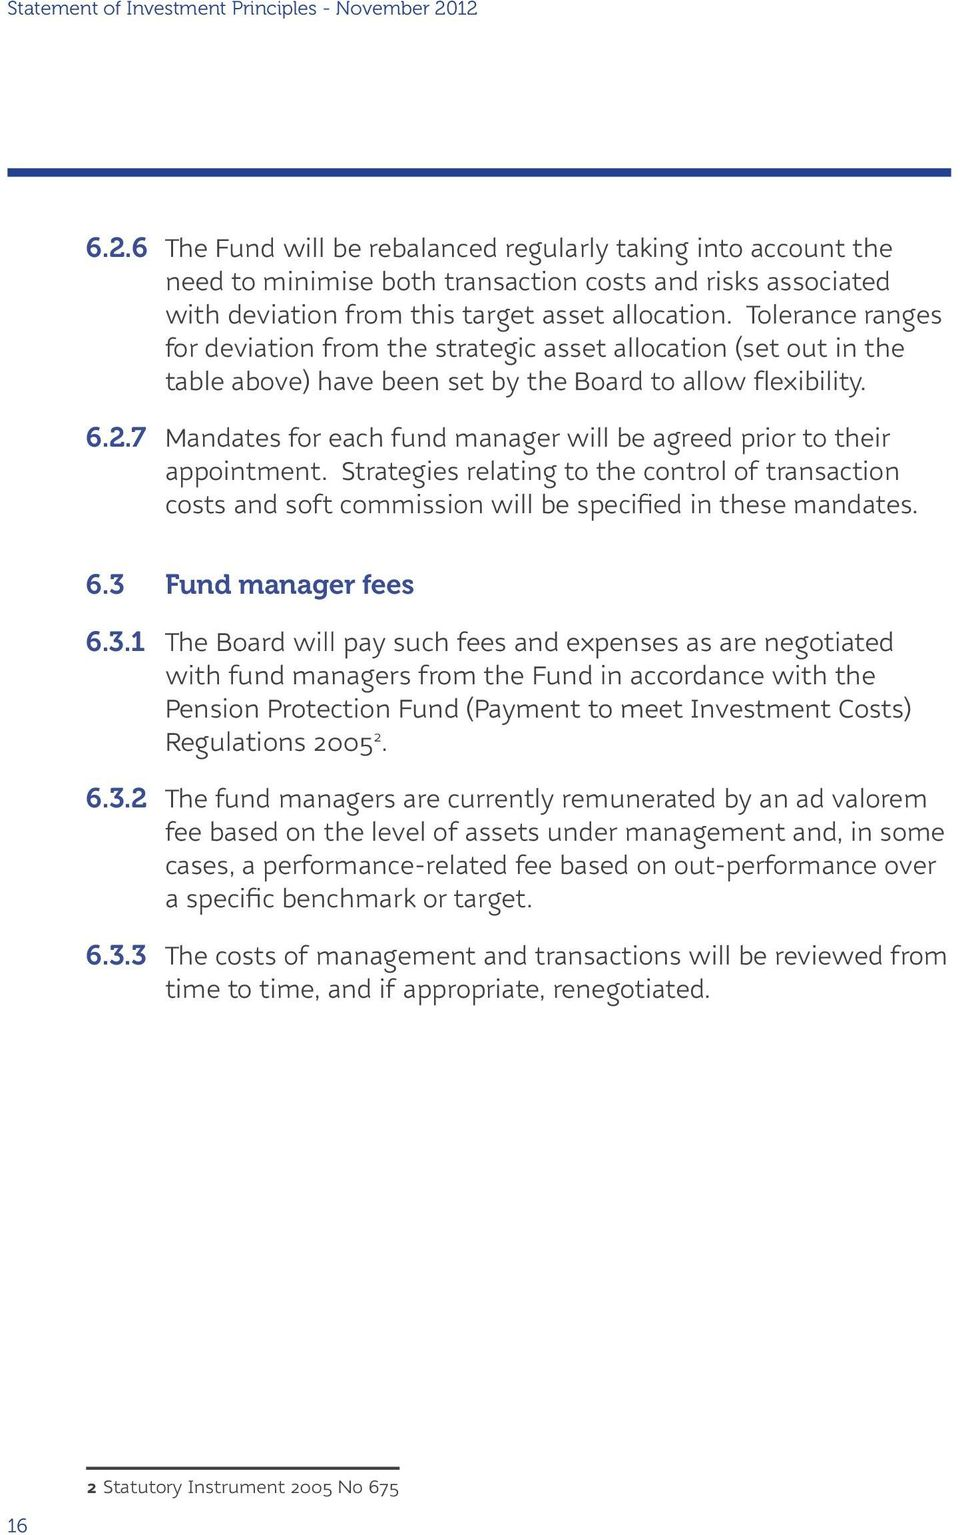 7 Mandates for each fund manager will be agreed prior to their appointment. Strategies relating to the control of transaction costs and soft commission will be specified in these mandates. 6.